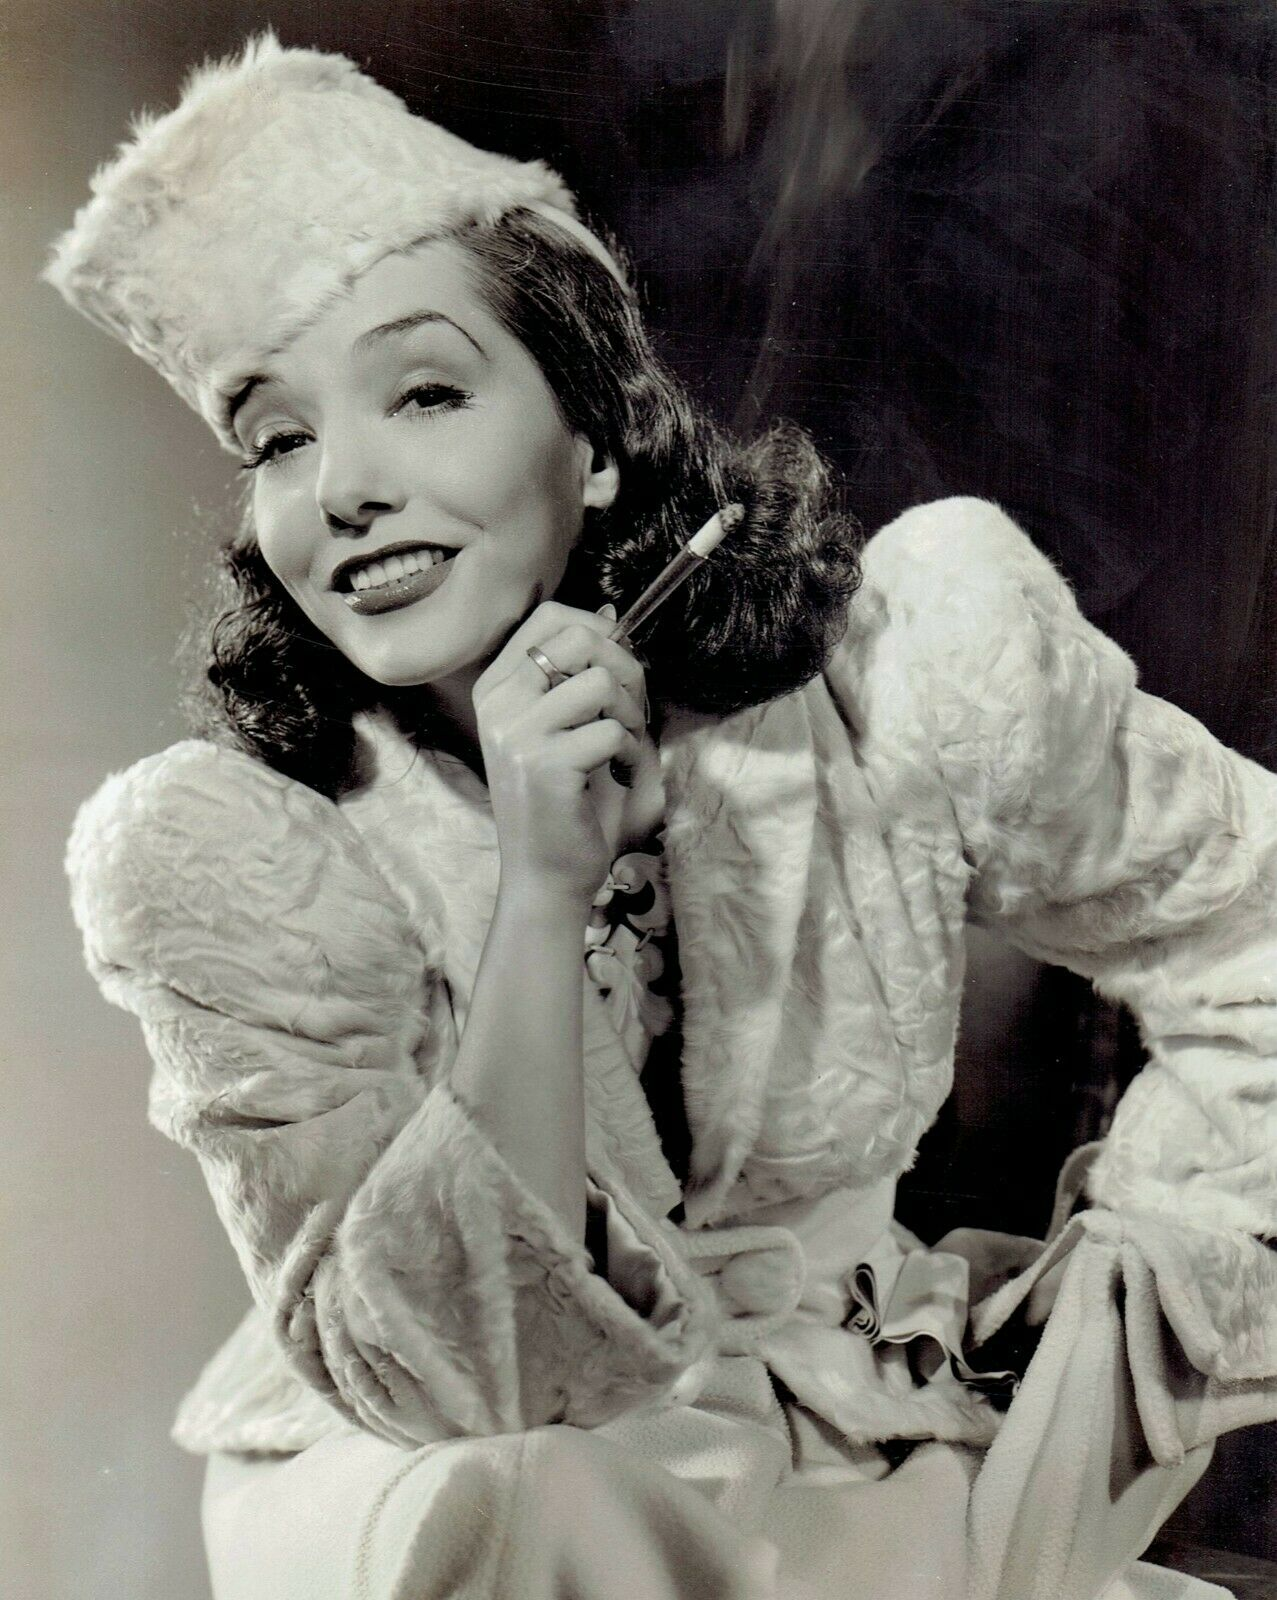 Vélez in a publicity photo for [[RKO Pictures|RKO]] in 1941